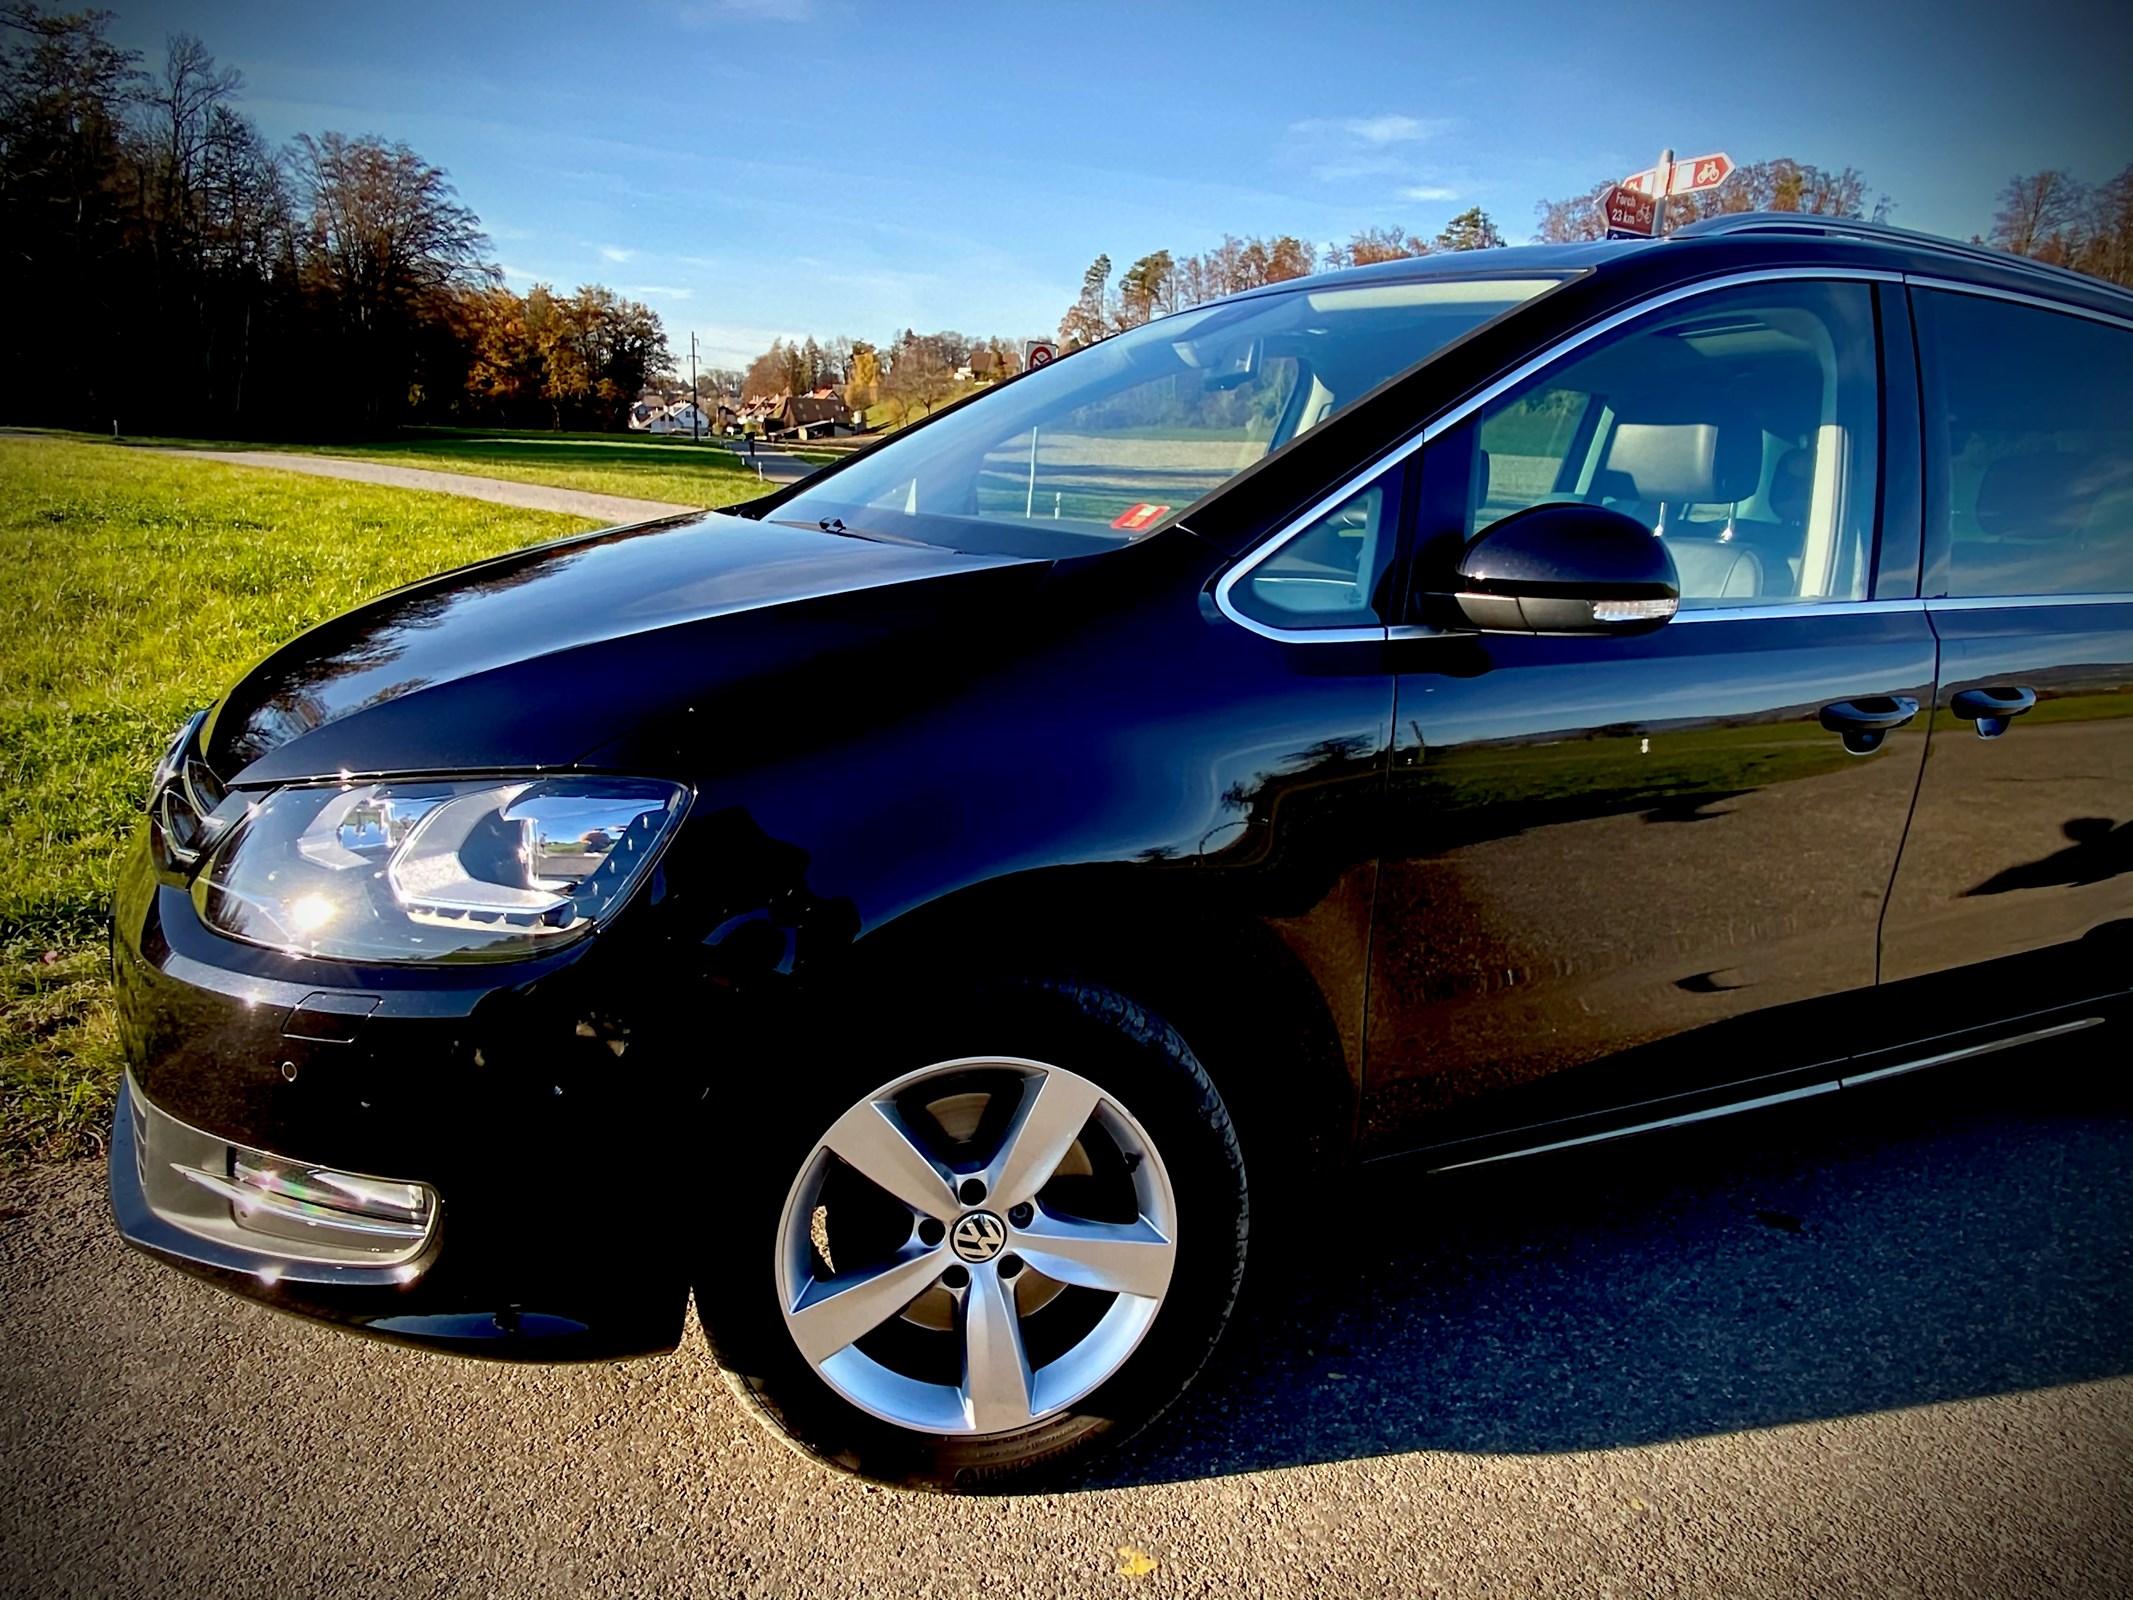 VW Sharan 2.0 TDI BlueMTA Highl. DSG